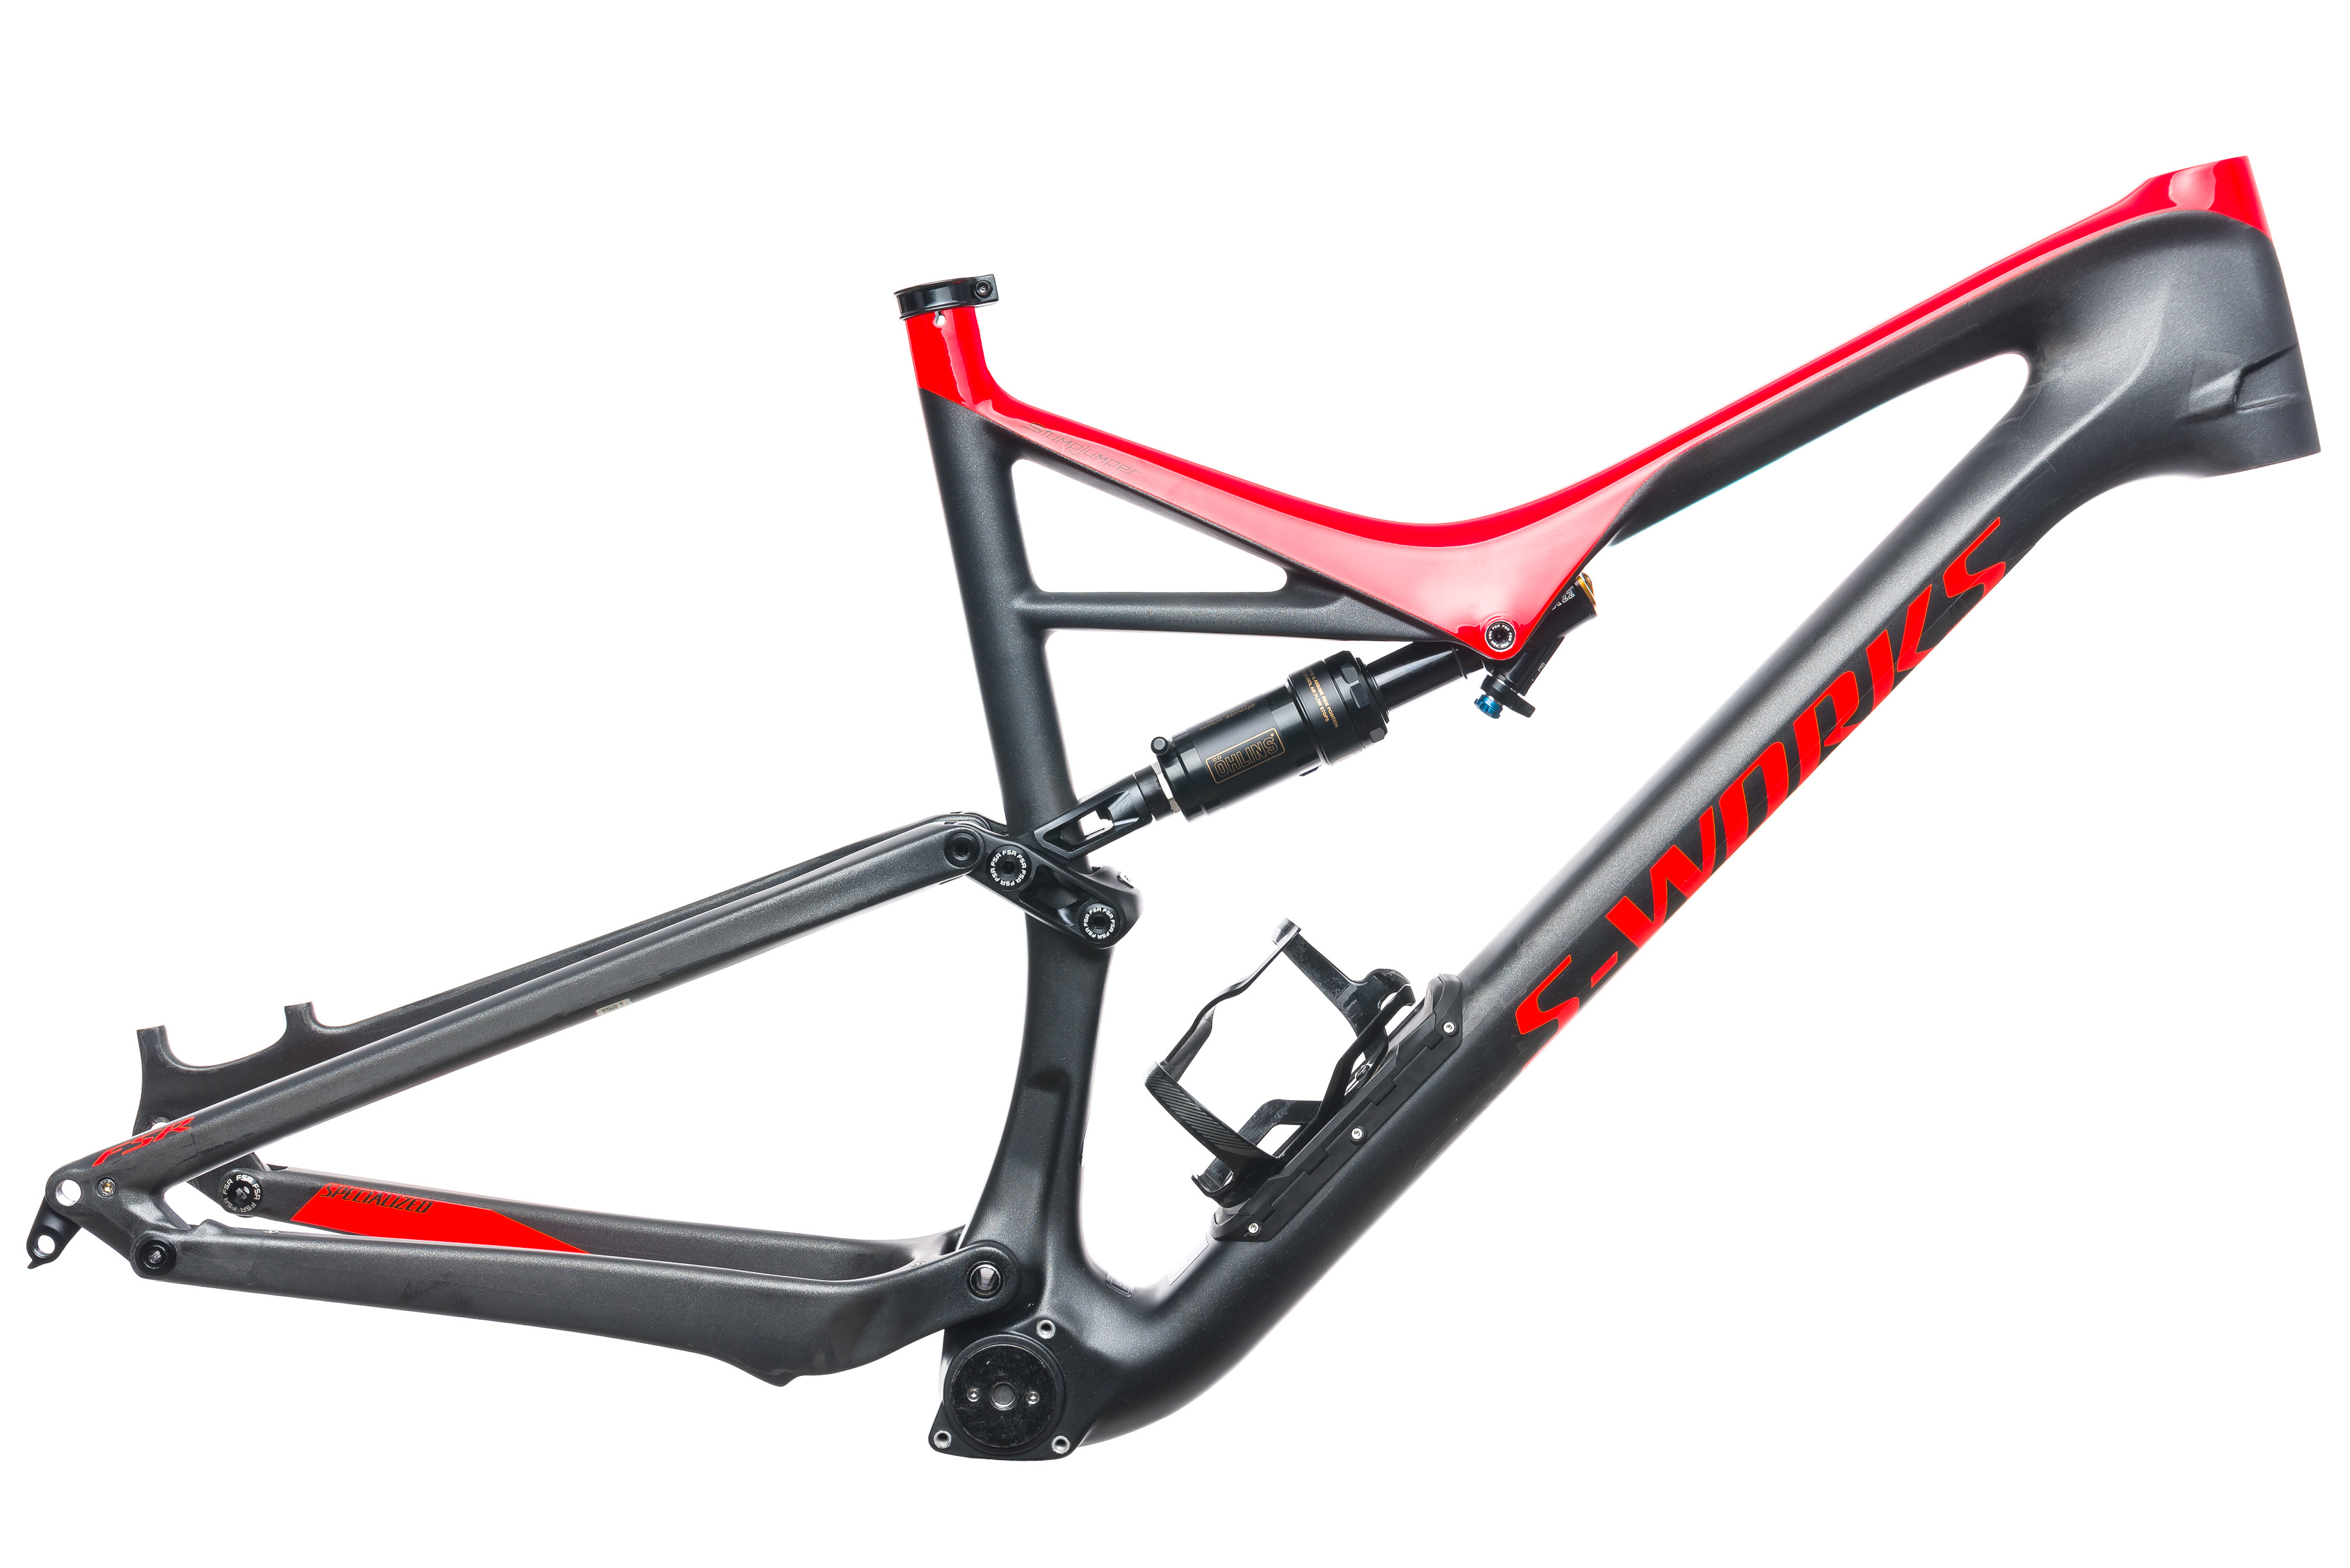 f3b4b8cb98e 2017 Specialized S-Works Stumpjumper FSR 29 Mountain Frame Set X-Large 29